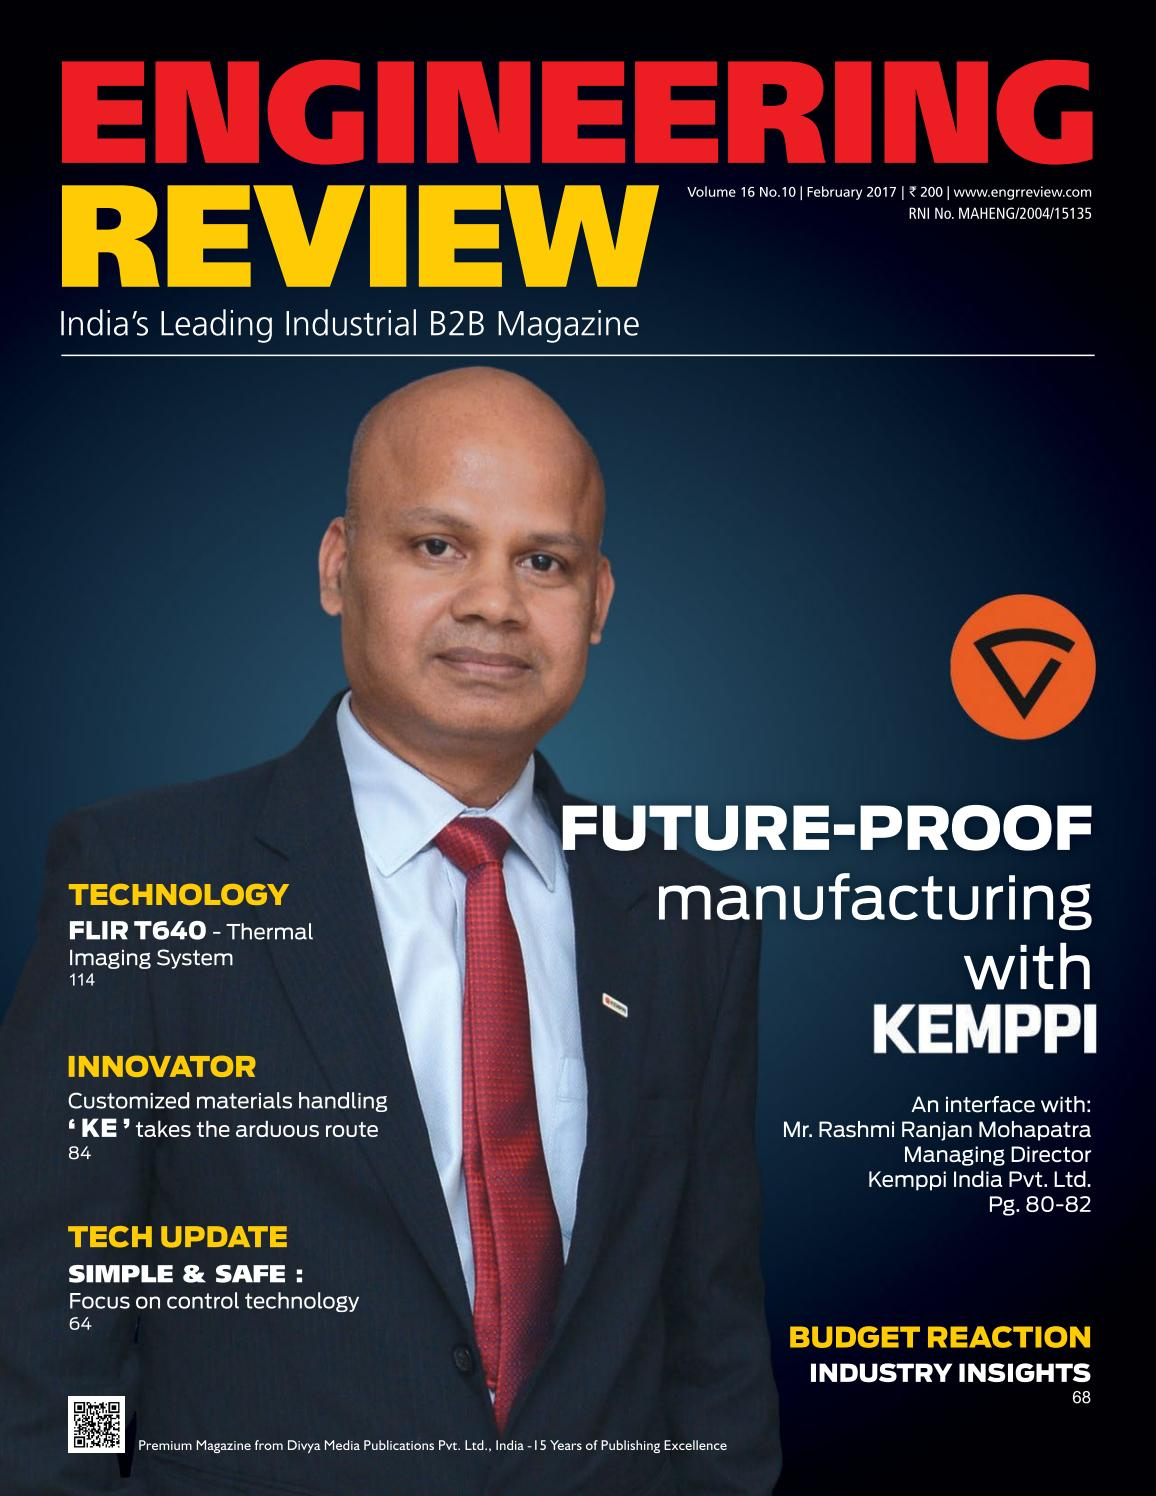 Engineering Review - February 2017 by Divya Media